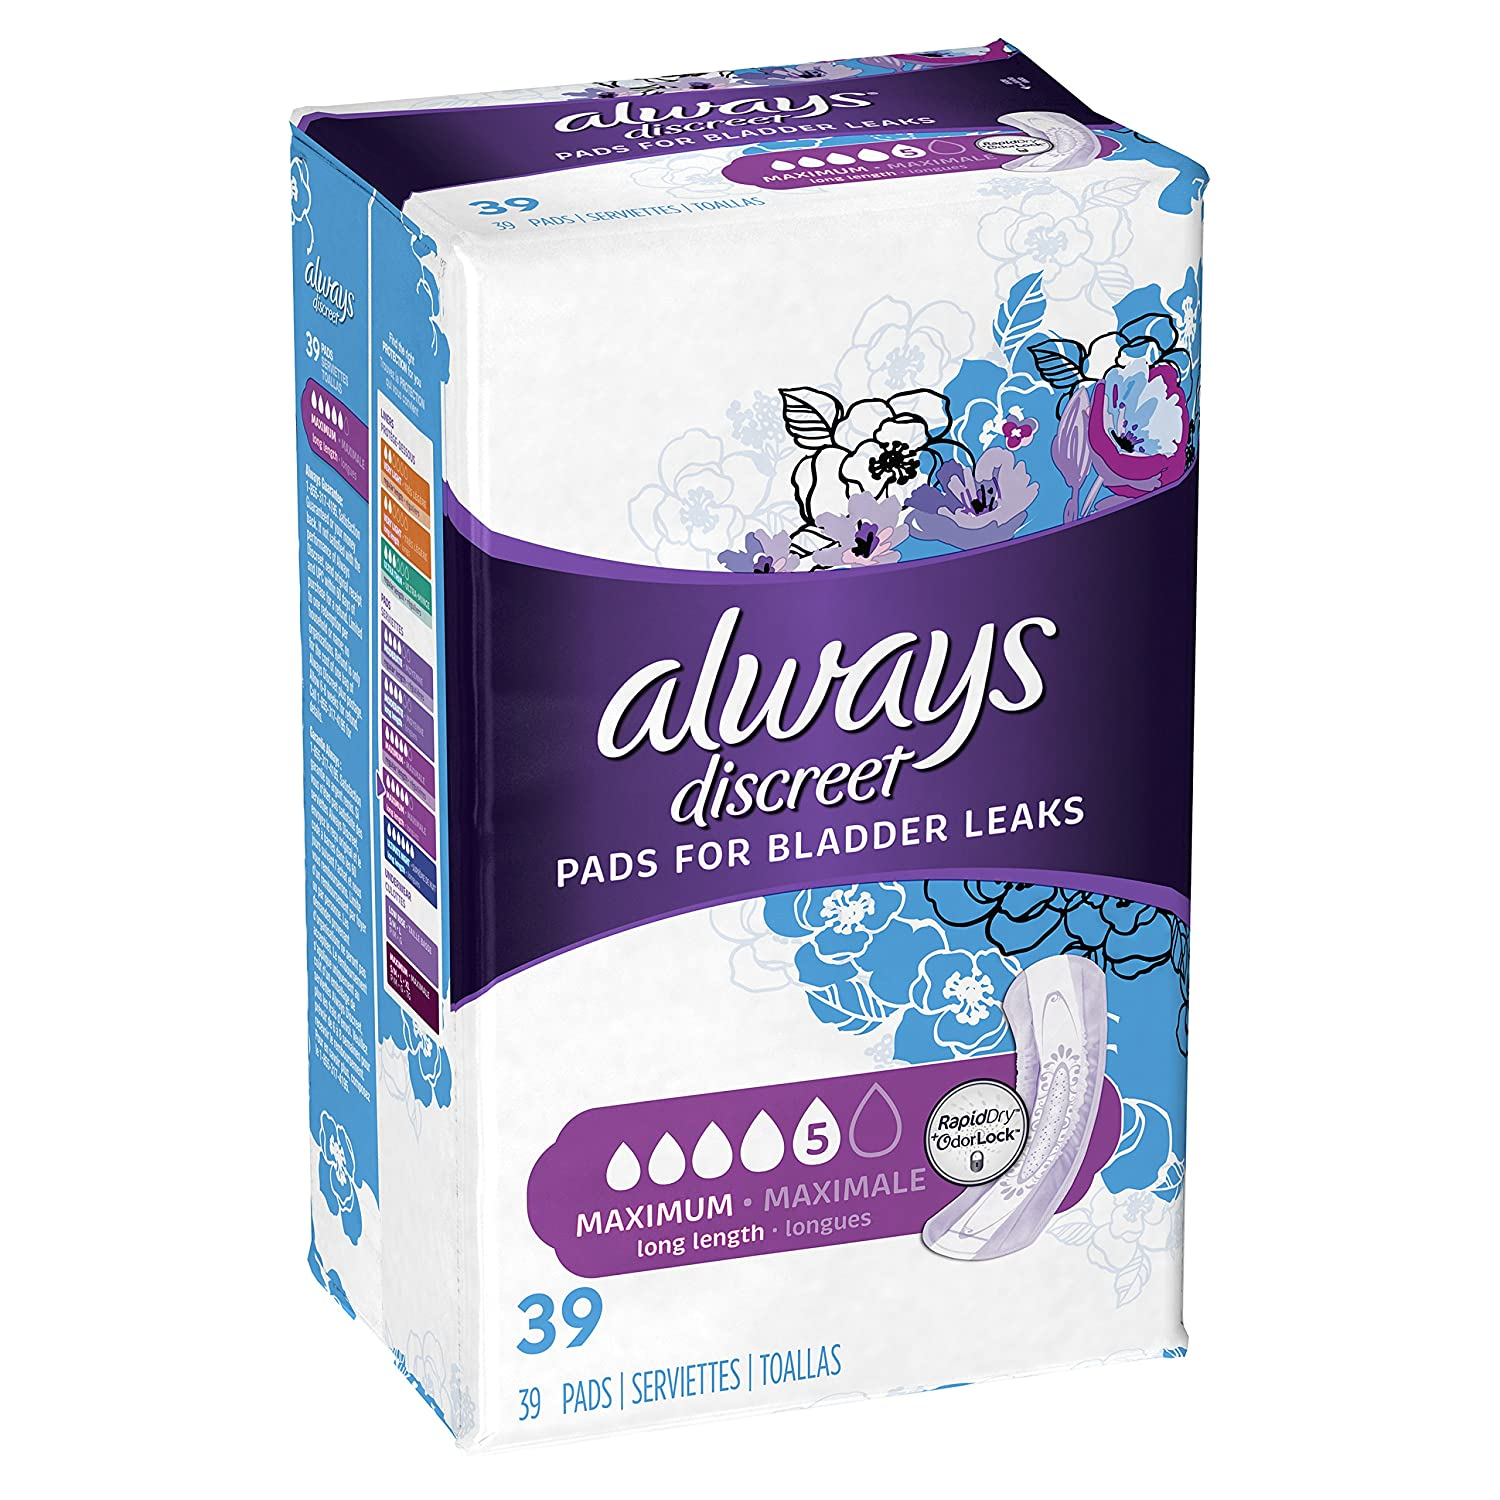 Amazon.com: Always Discreet, Incontinence Pads, Maximum, Long Length, 39 Count: Prime Pantry